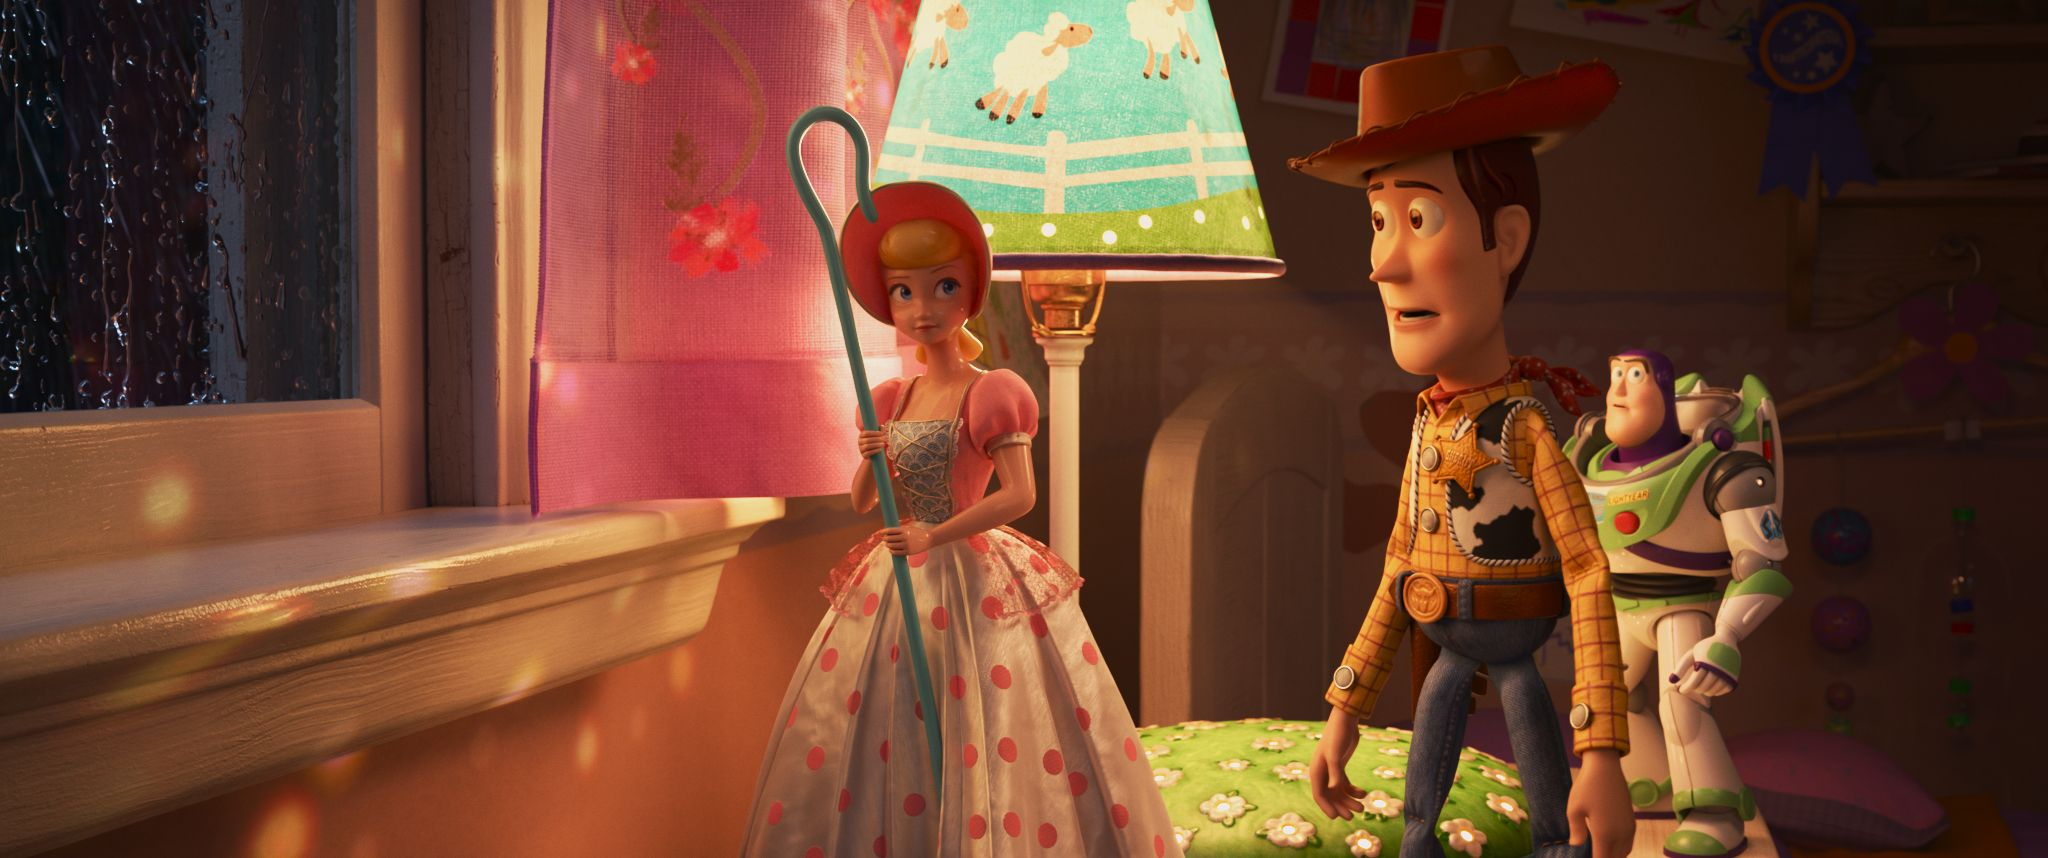 Toy Story 4 L R Bo Peep Woody And Buzz Lightyear C 2019 Disney Pixar All Rights Reserved Toy Story Bo Peep Pixar